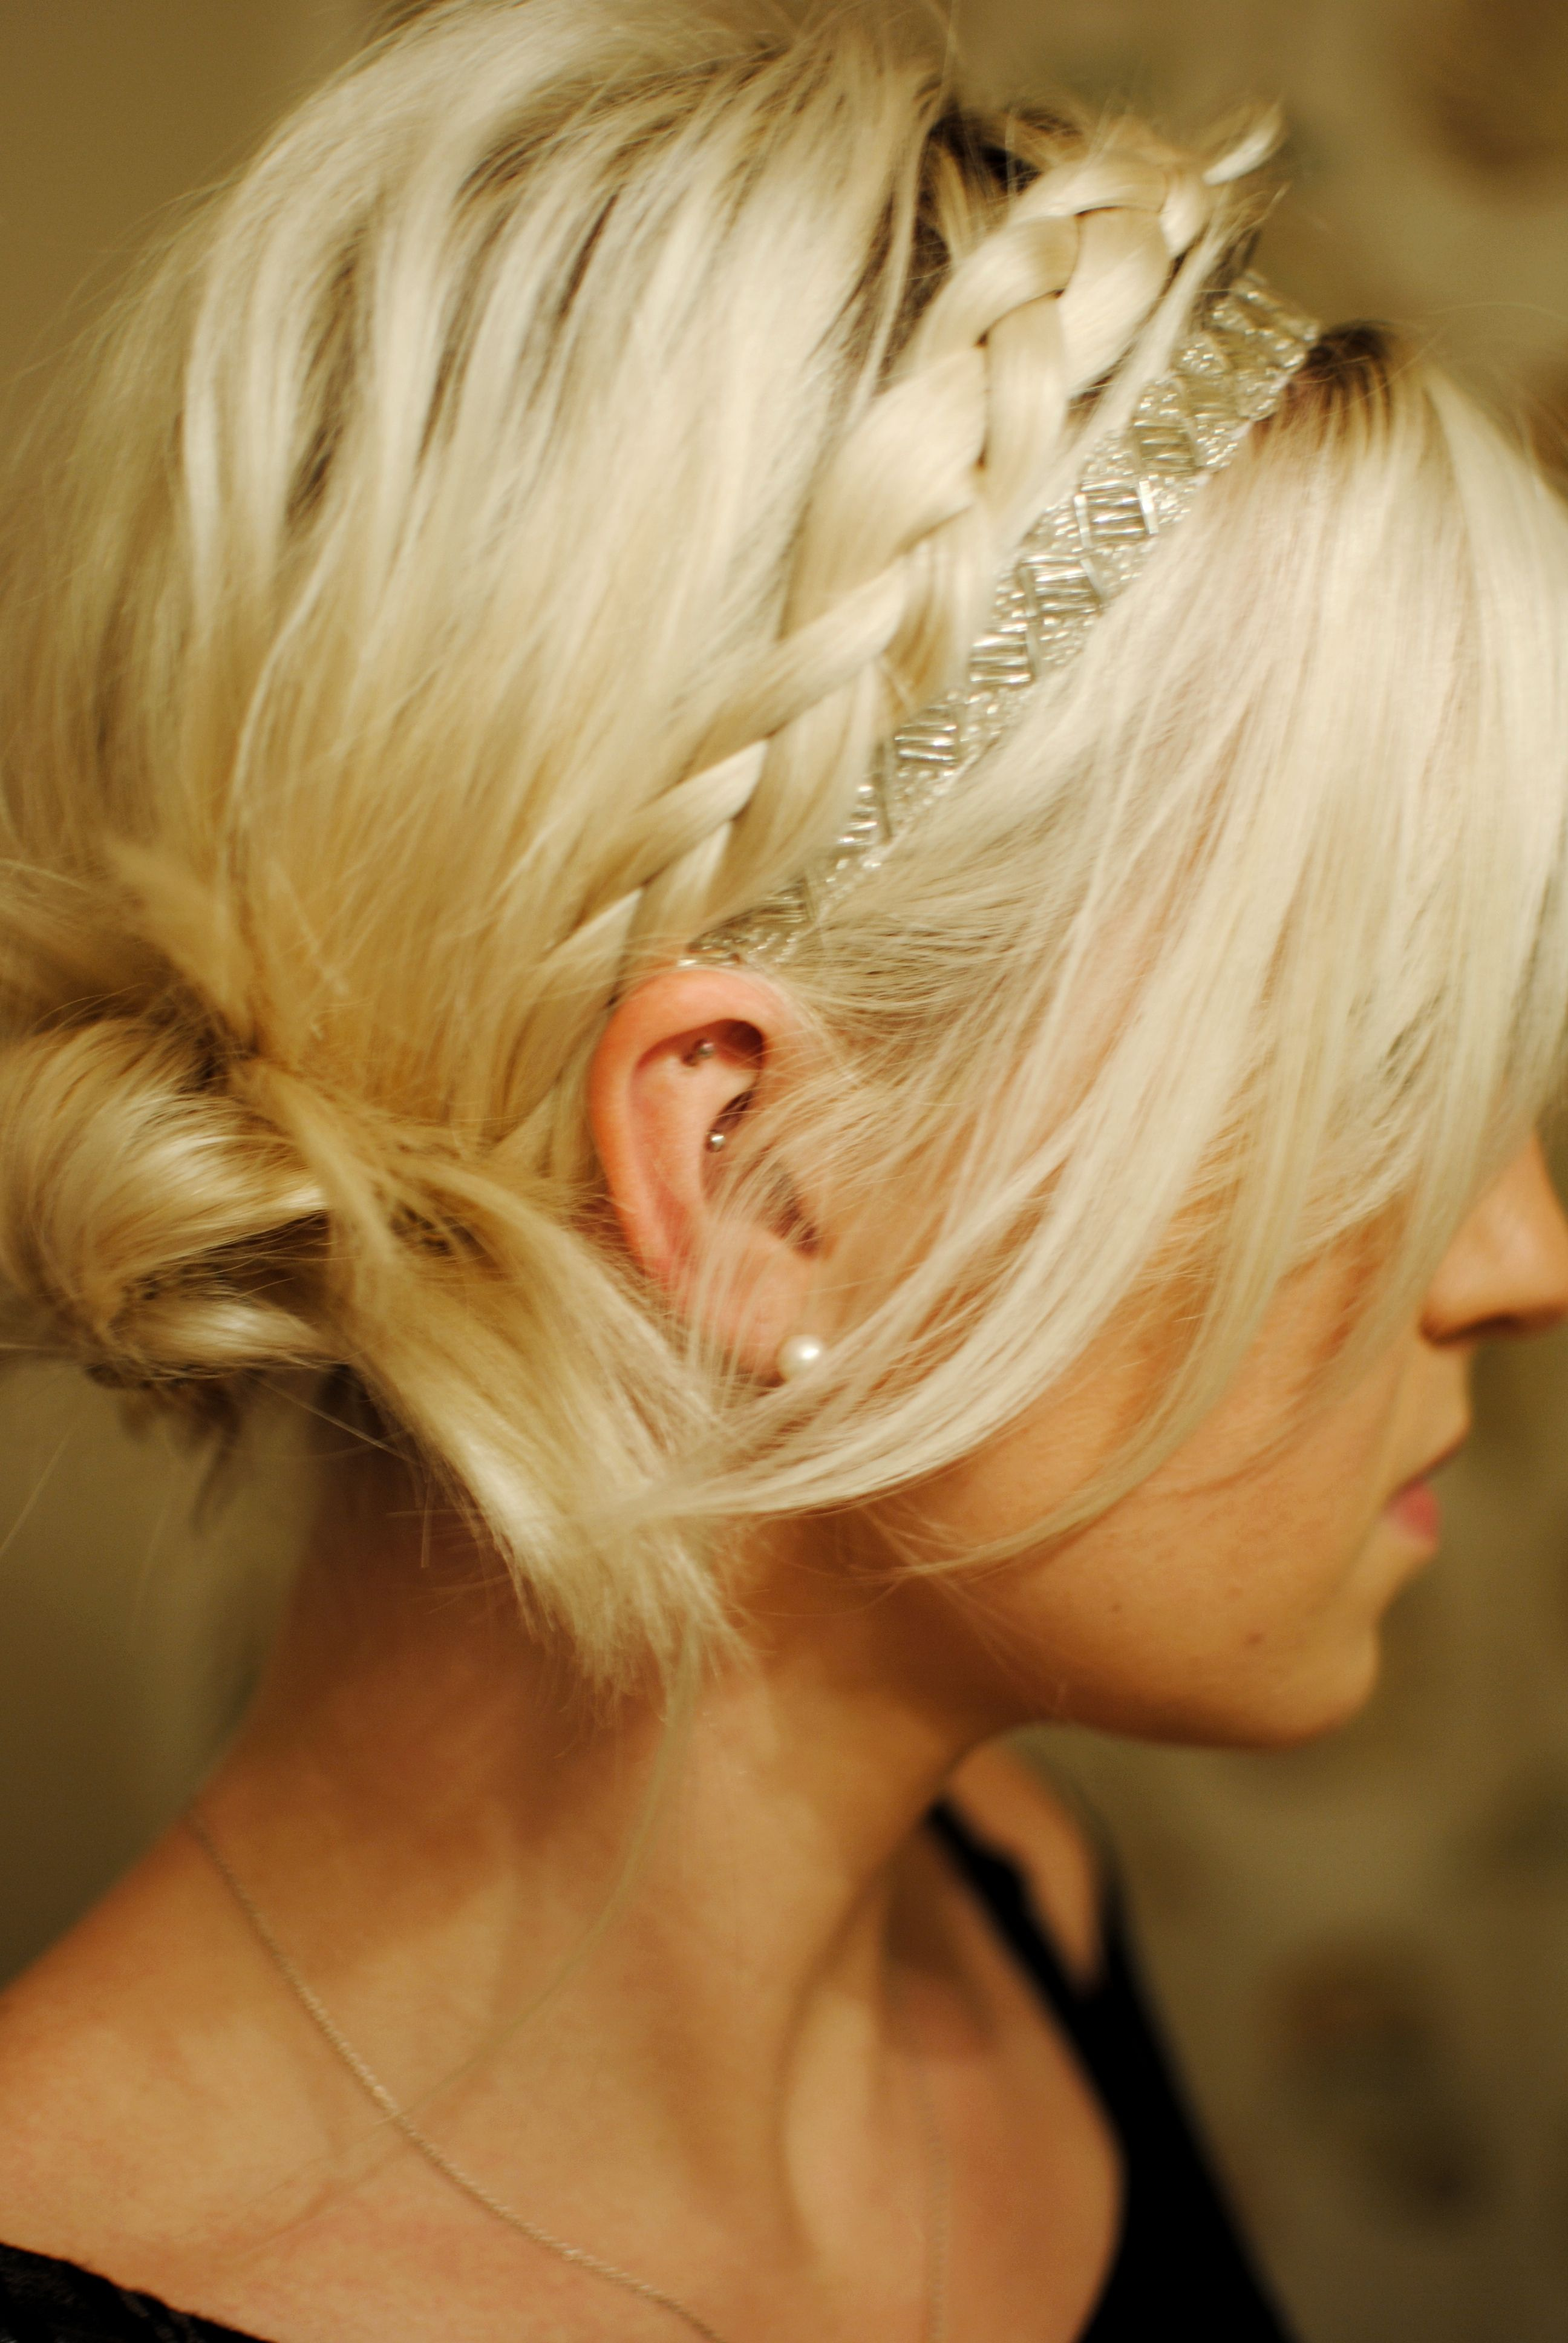 Braided Updo Simple And Pretty Perfect For A Special Night Out Or Black Tie Event Long Hair Styles Headband Hairstyles Braided Hairstyles Updo